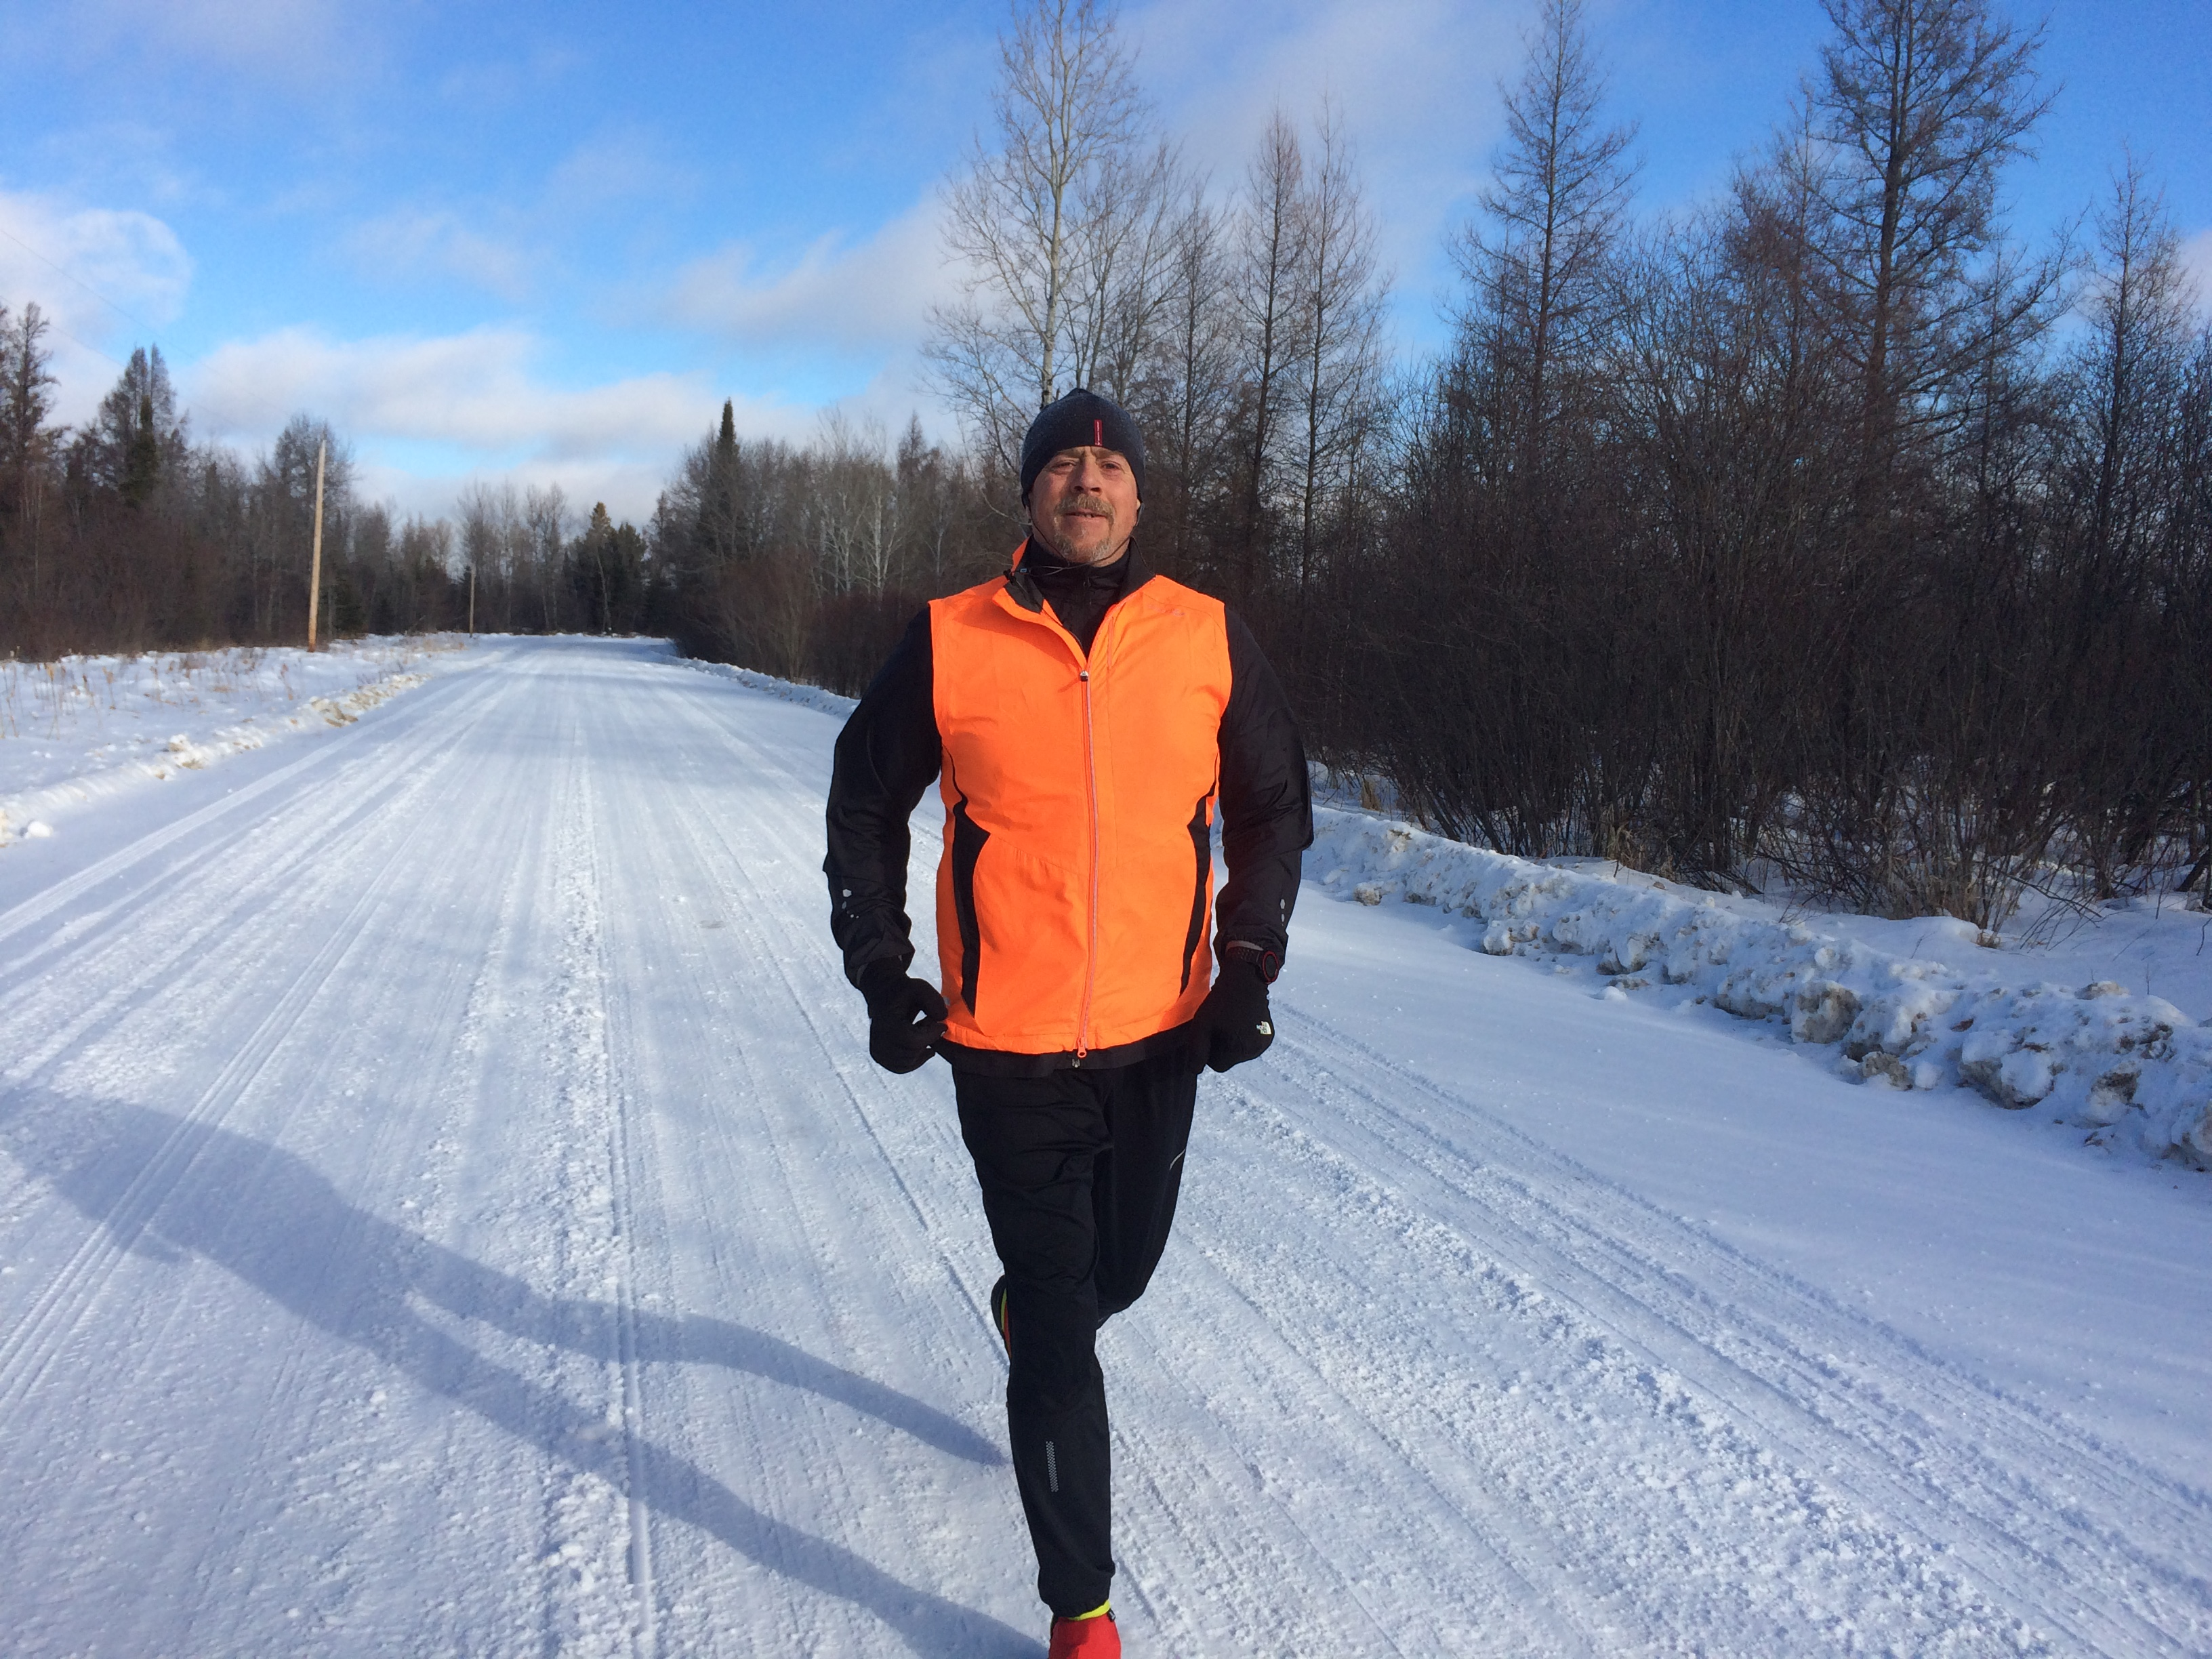 I Hated Winter Running And Walking. Then I Got These Mittens images